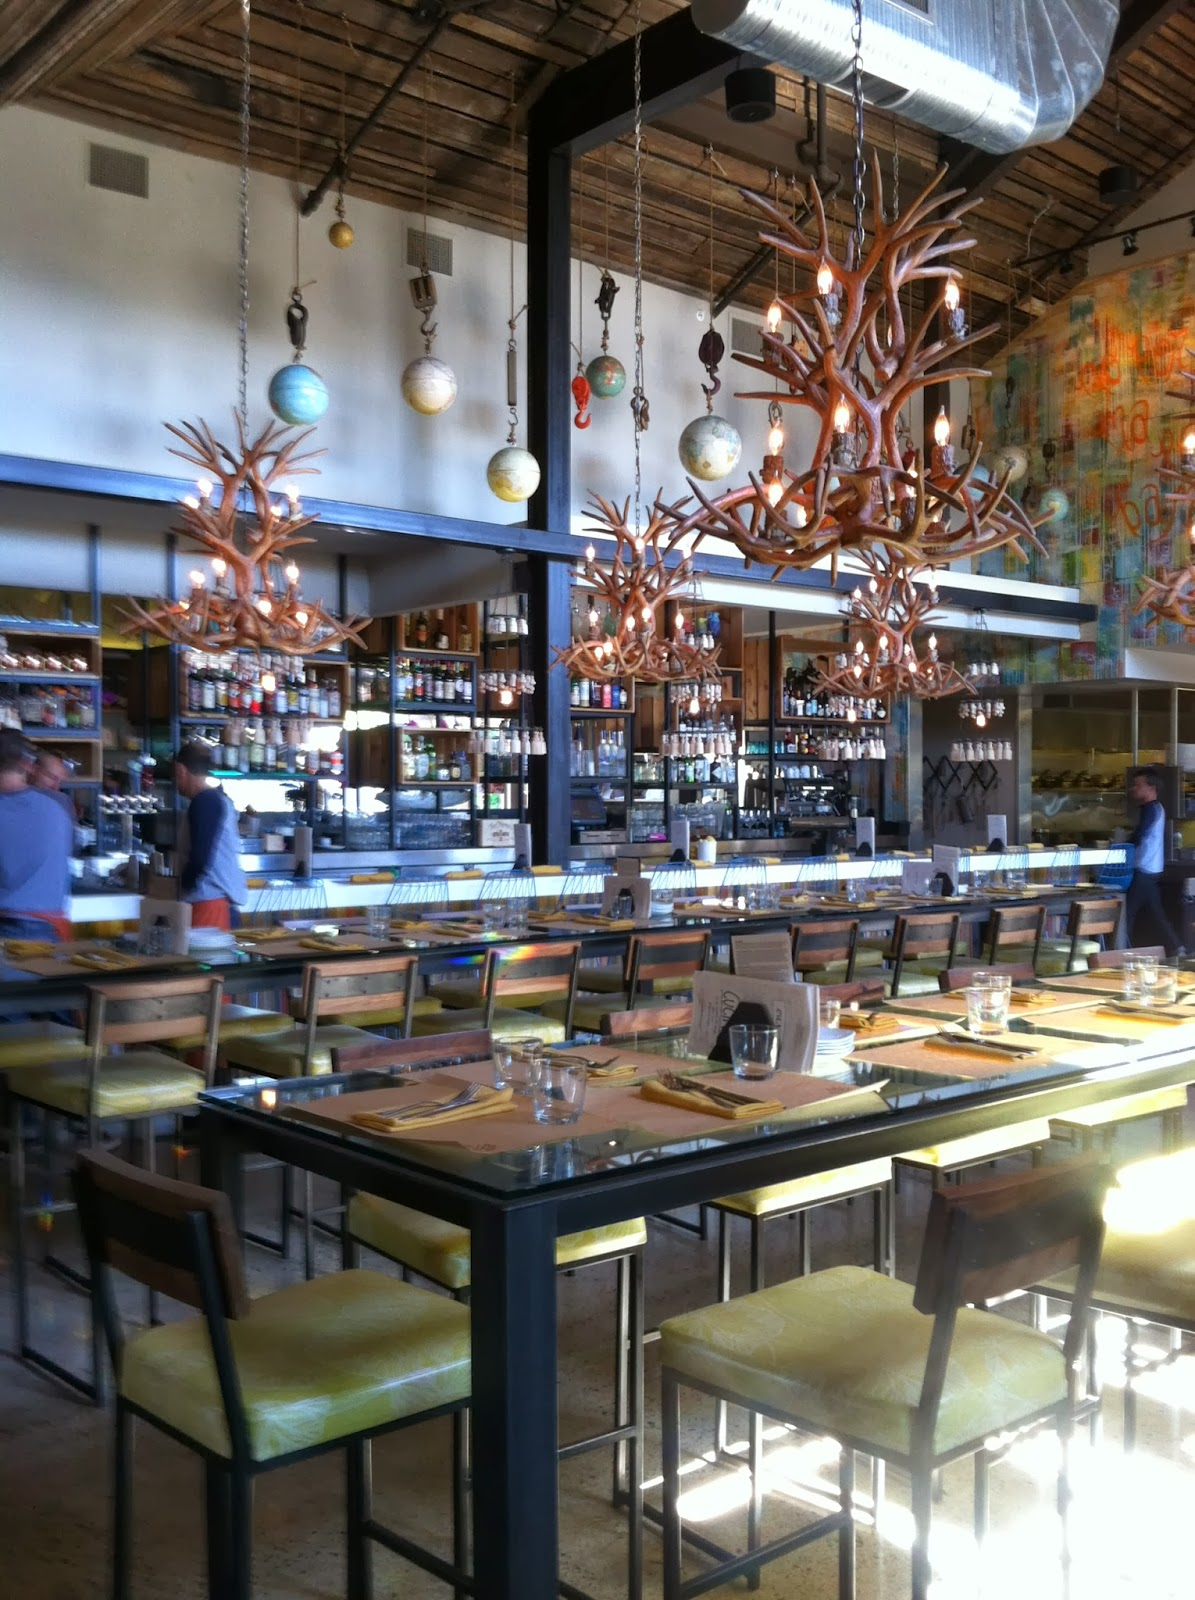 Susie Says Cucina Enoteca New Hot Spot In Del Mar